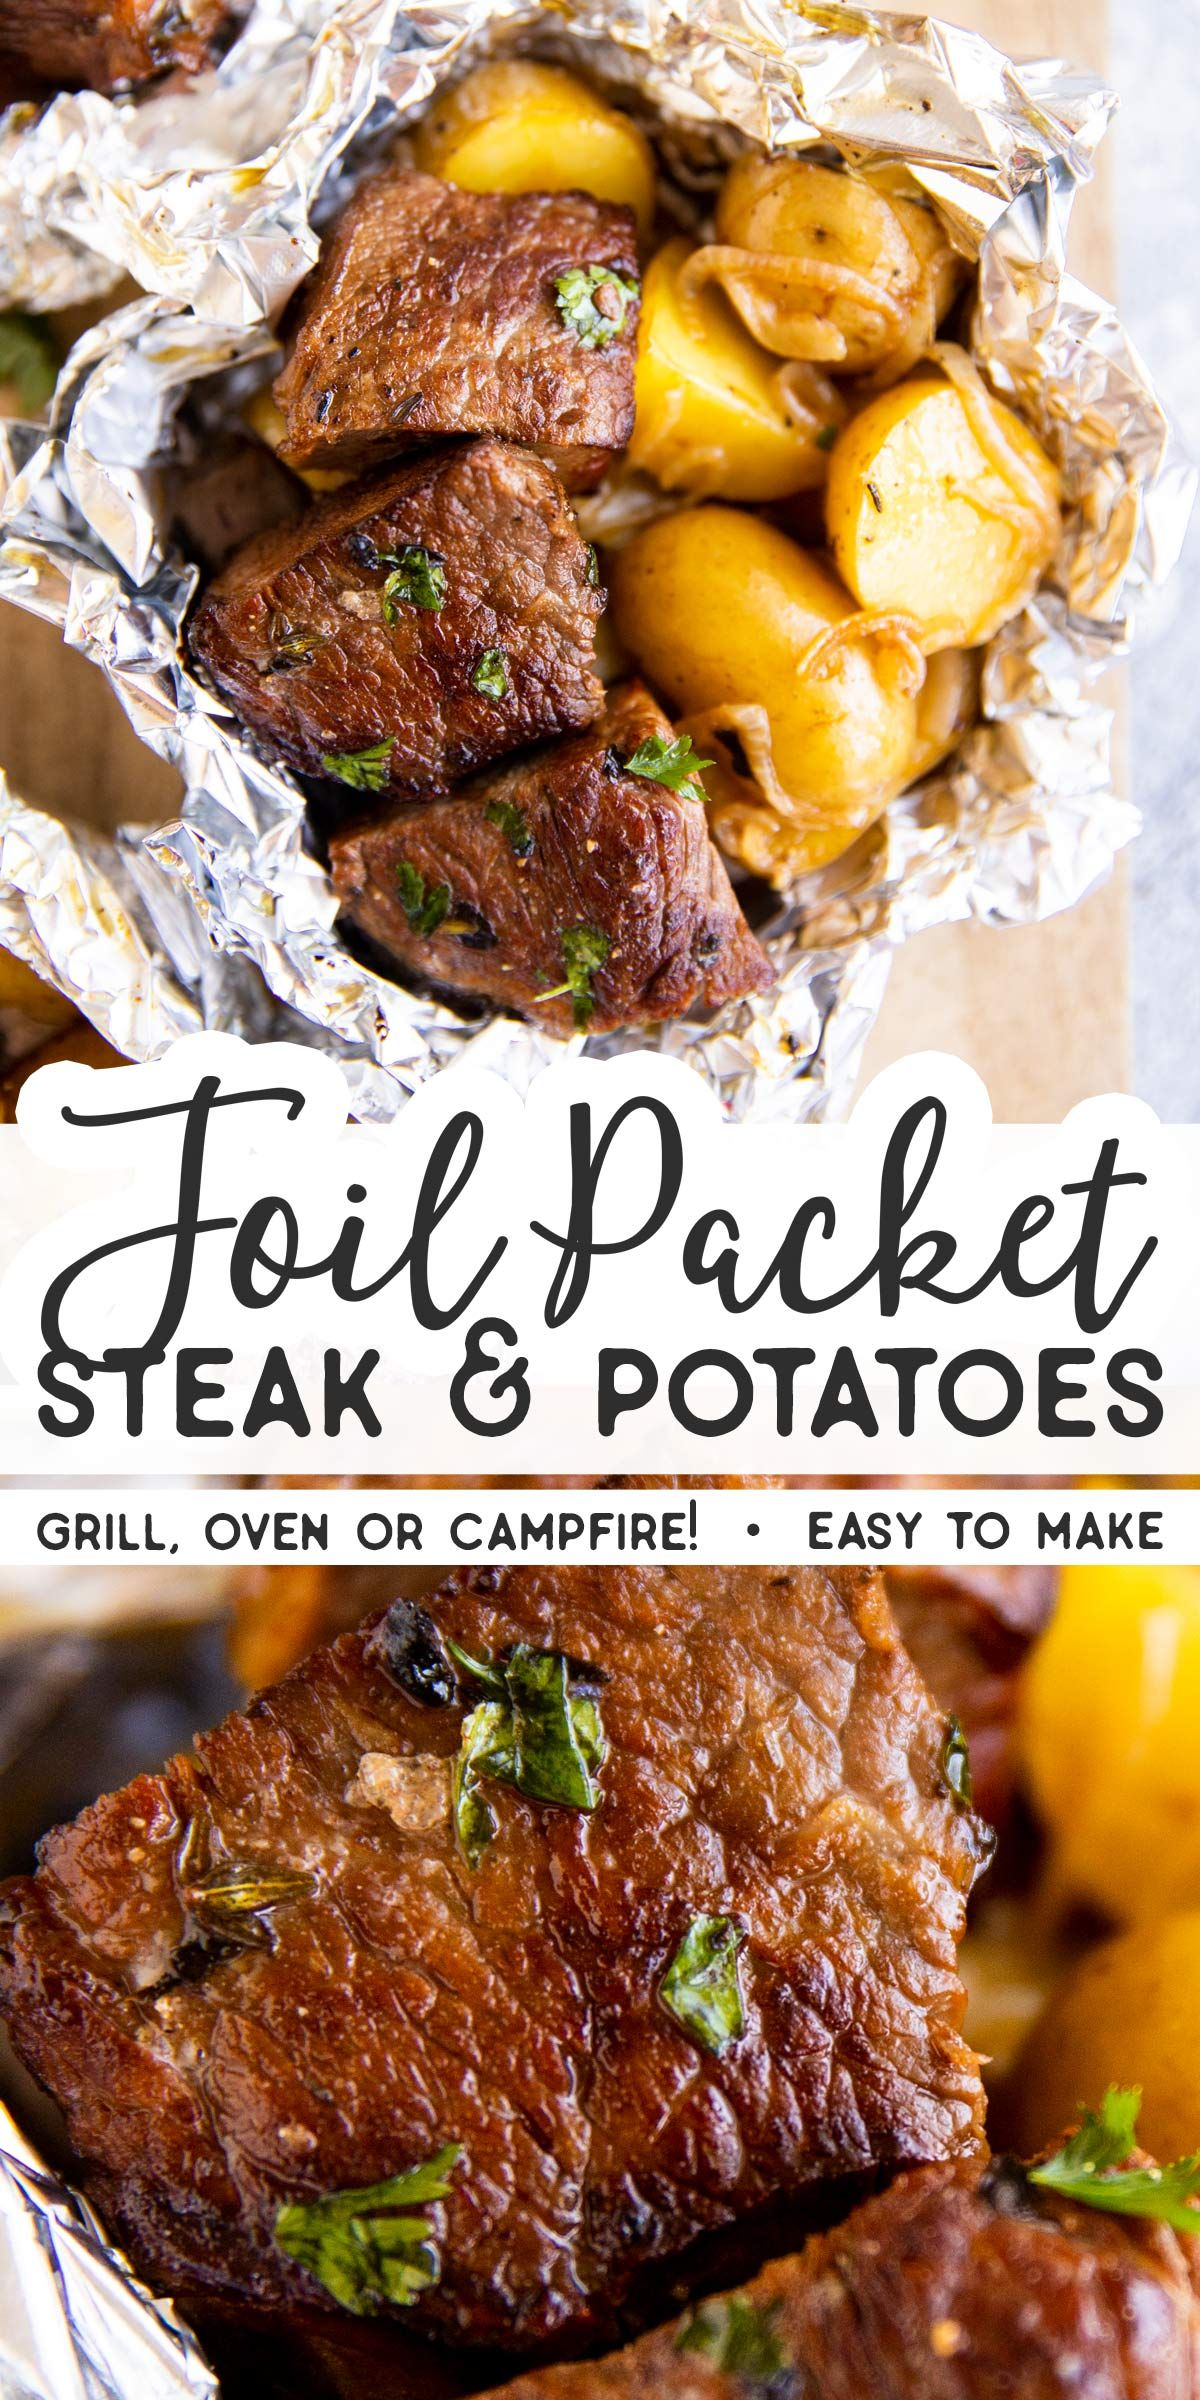 Garlic Butter Steak and Potato Foil Packets